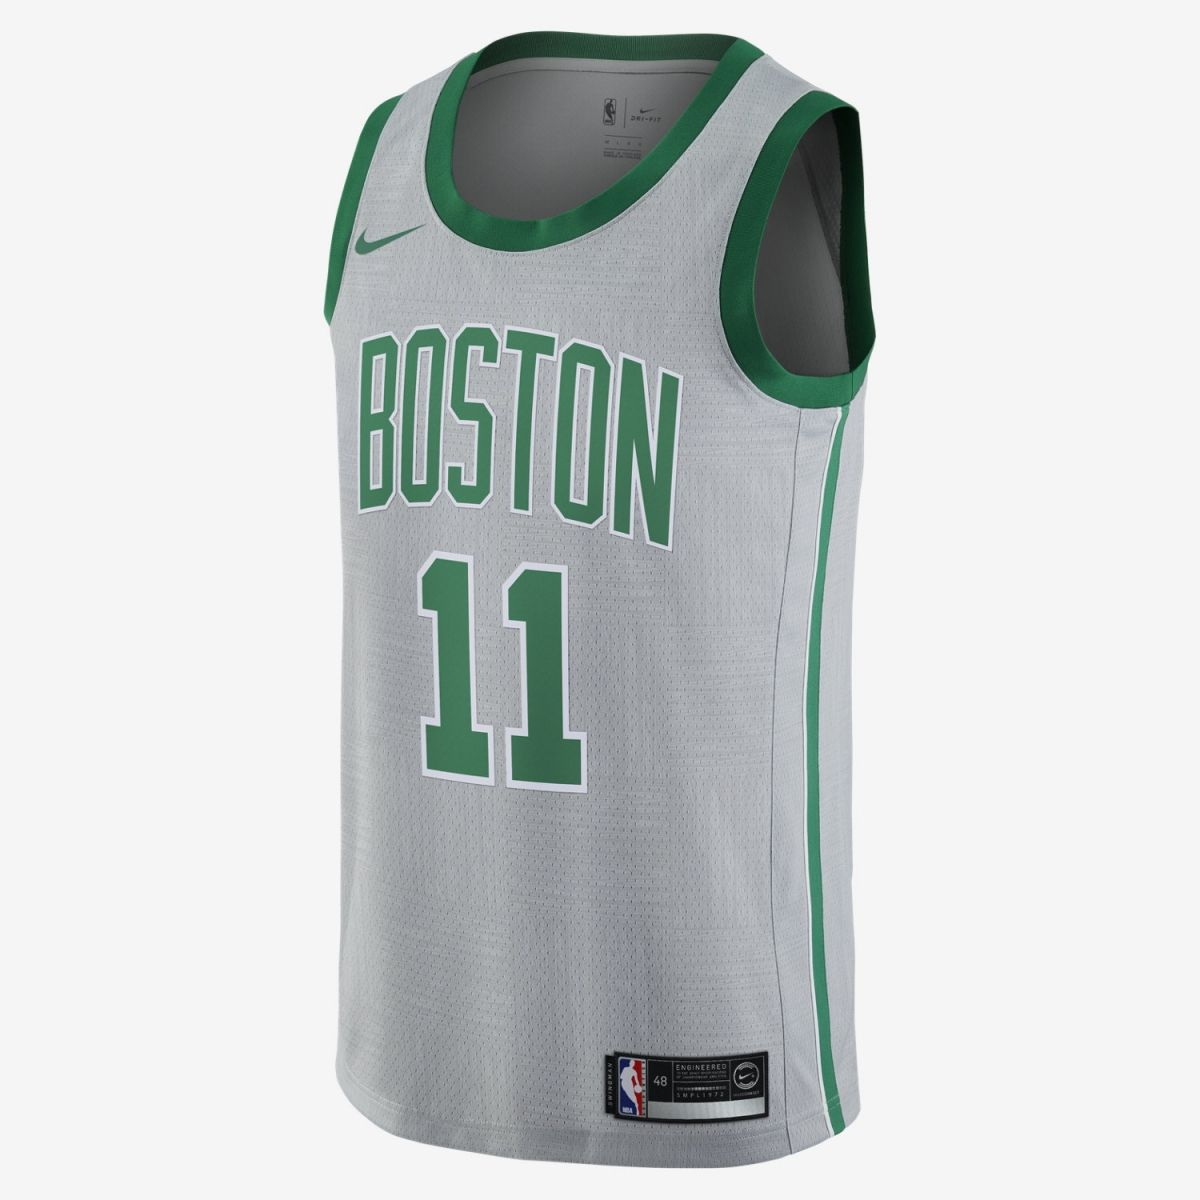 c460491c0a70 Type Shirts Nike NBA Boston Celtics Kyrie Irving City Edition ...